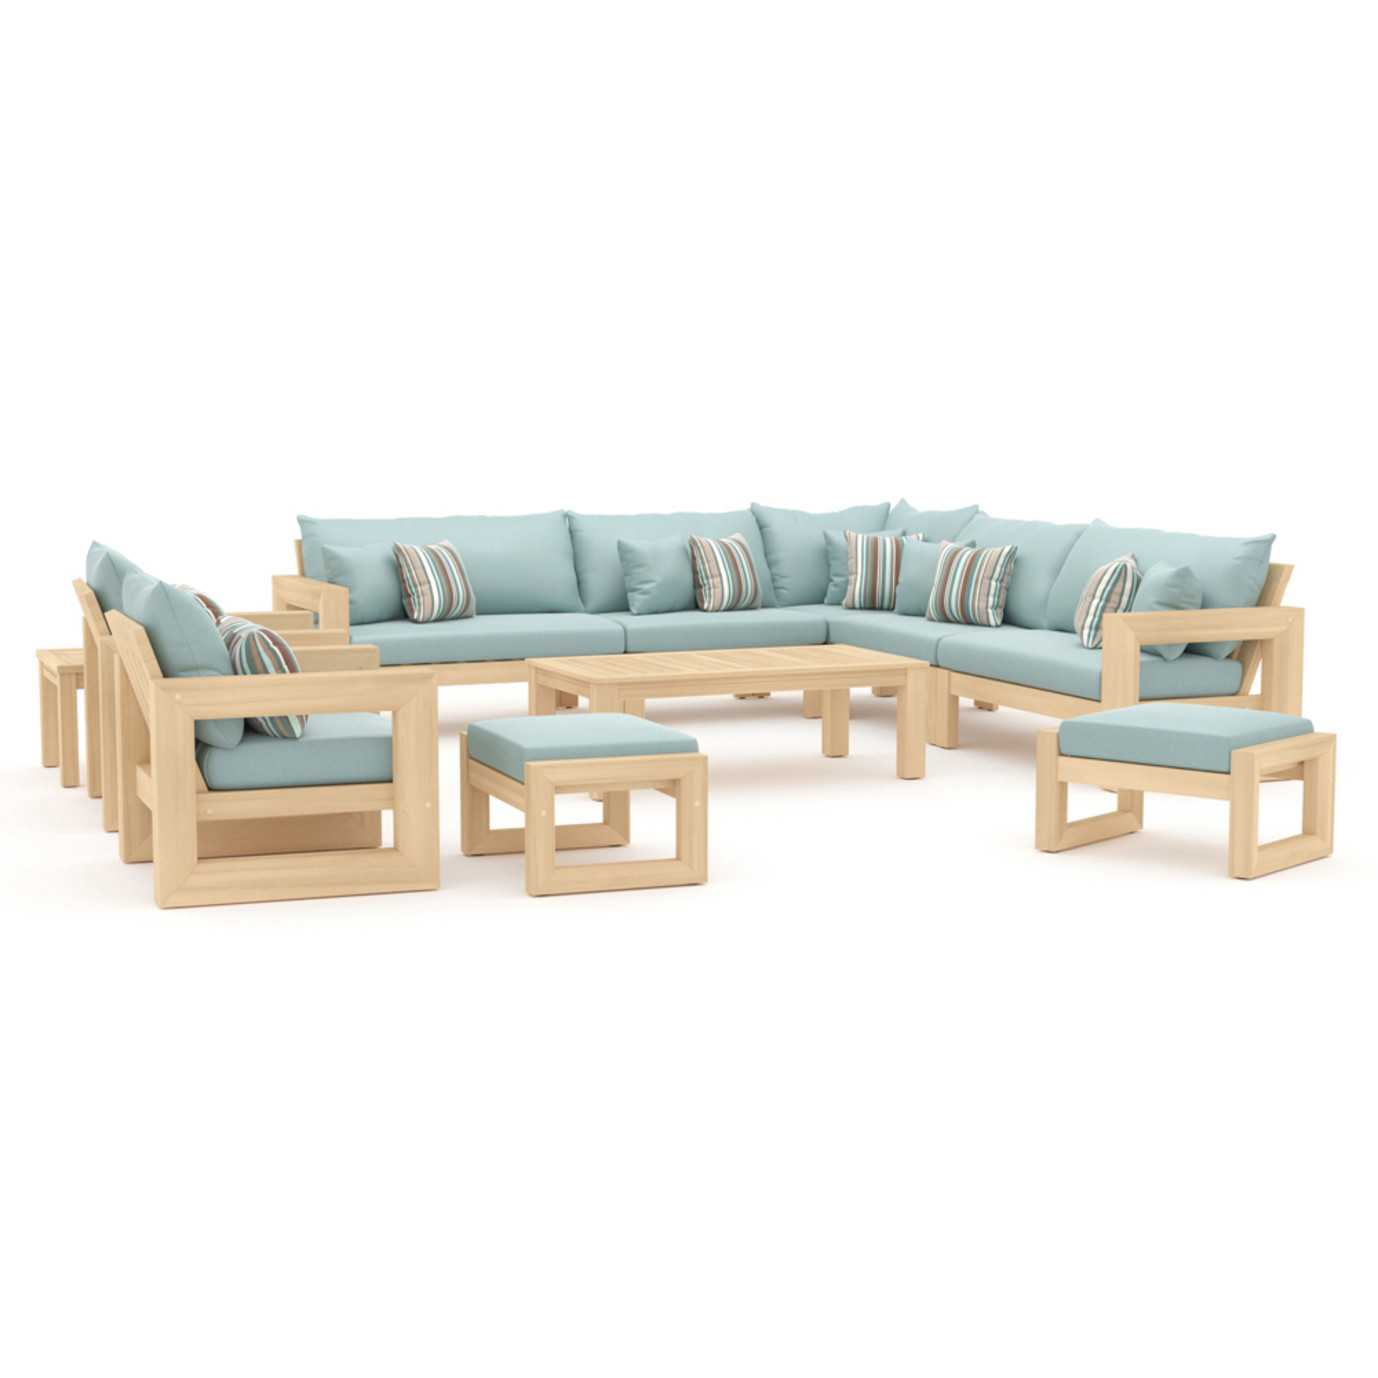 Benson 11 Piece Estate Collection - Bliss Blue